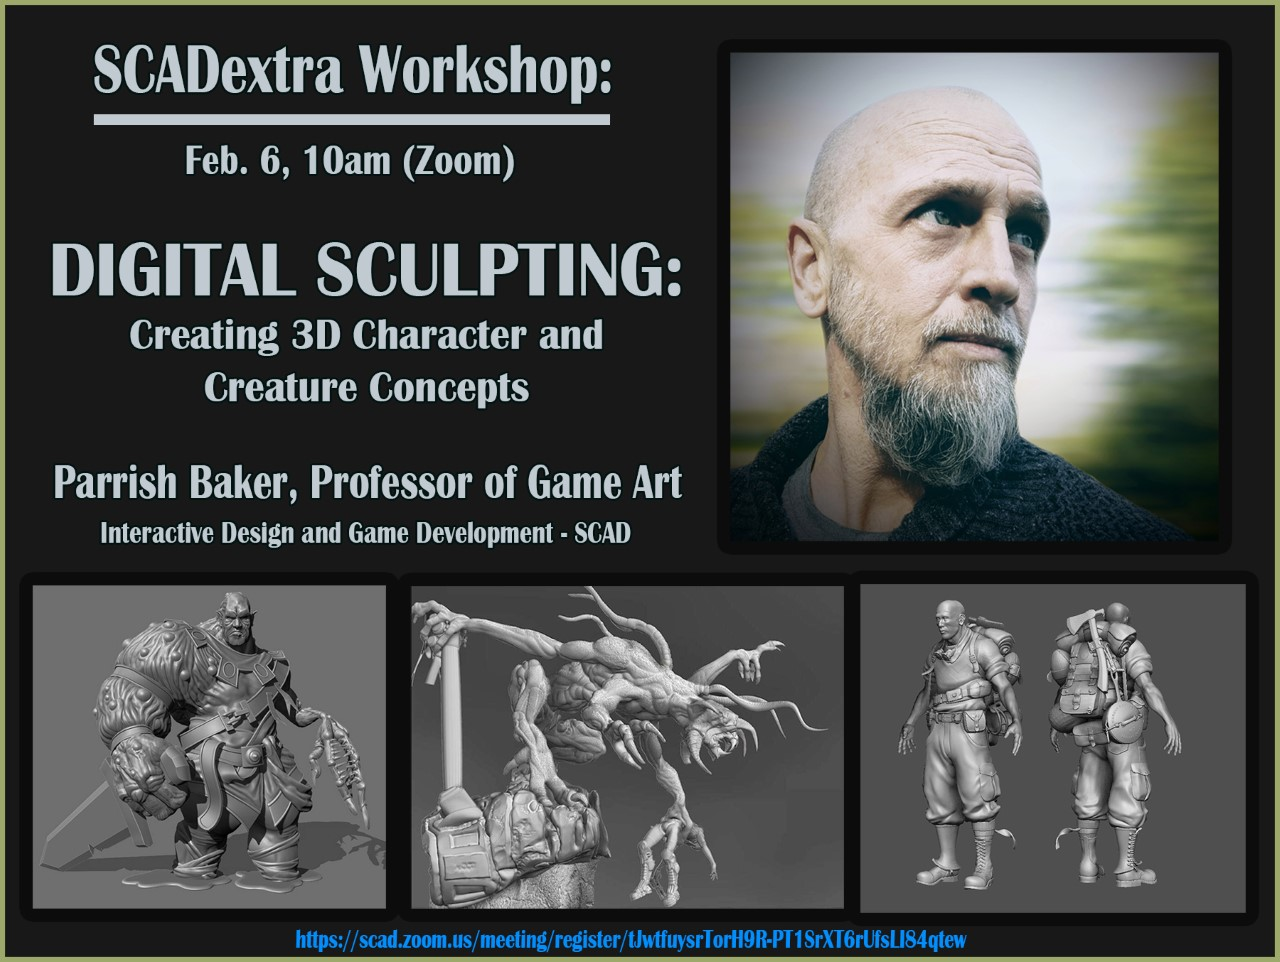 SCADextra Workshop: DIGITAL SCULPTING